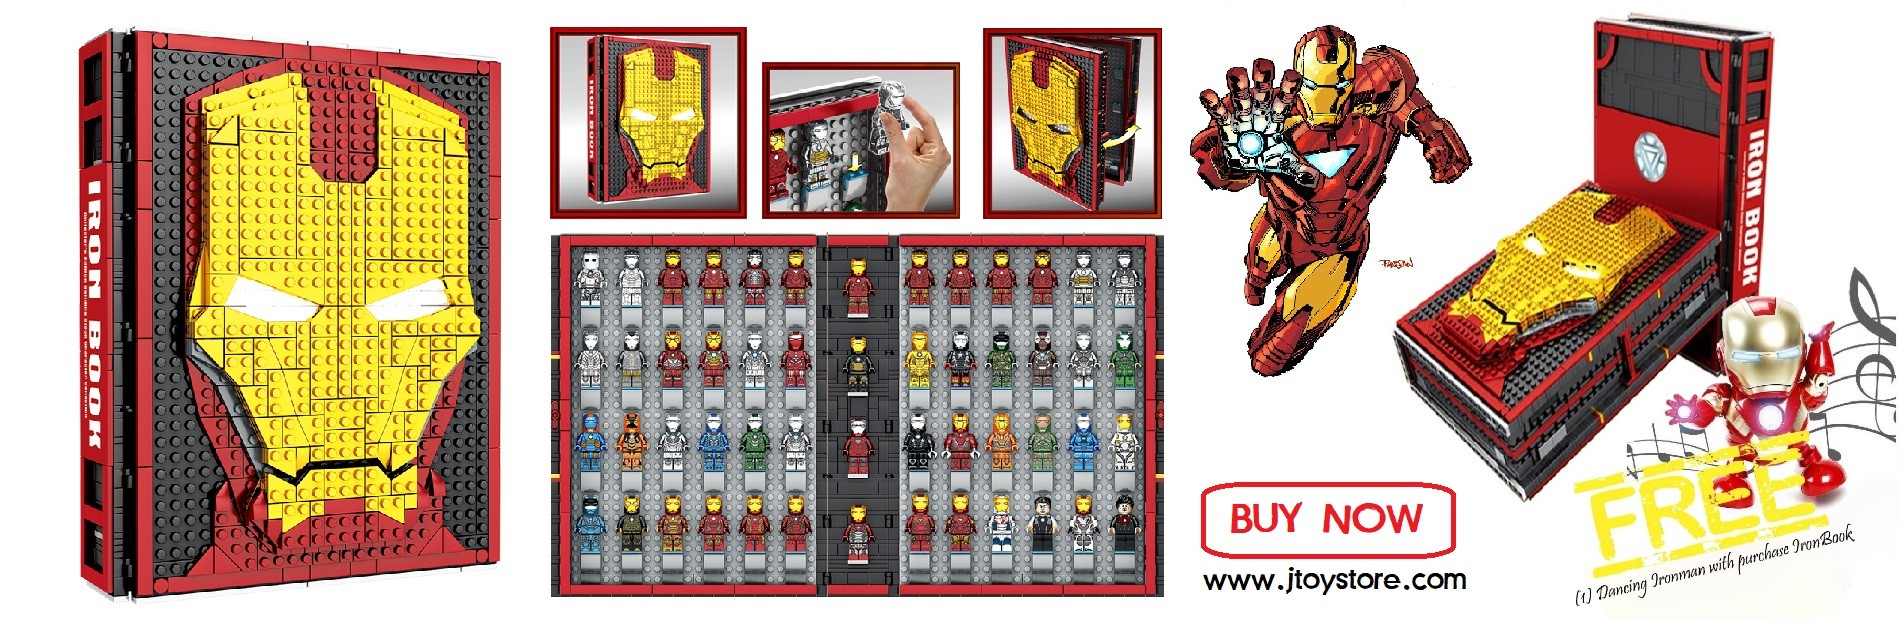 SEMBO SY1360 IronBook Minifigure